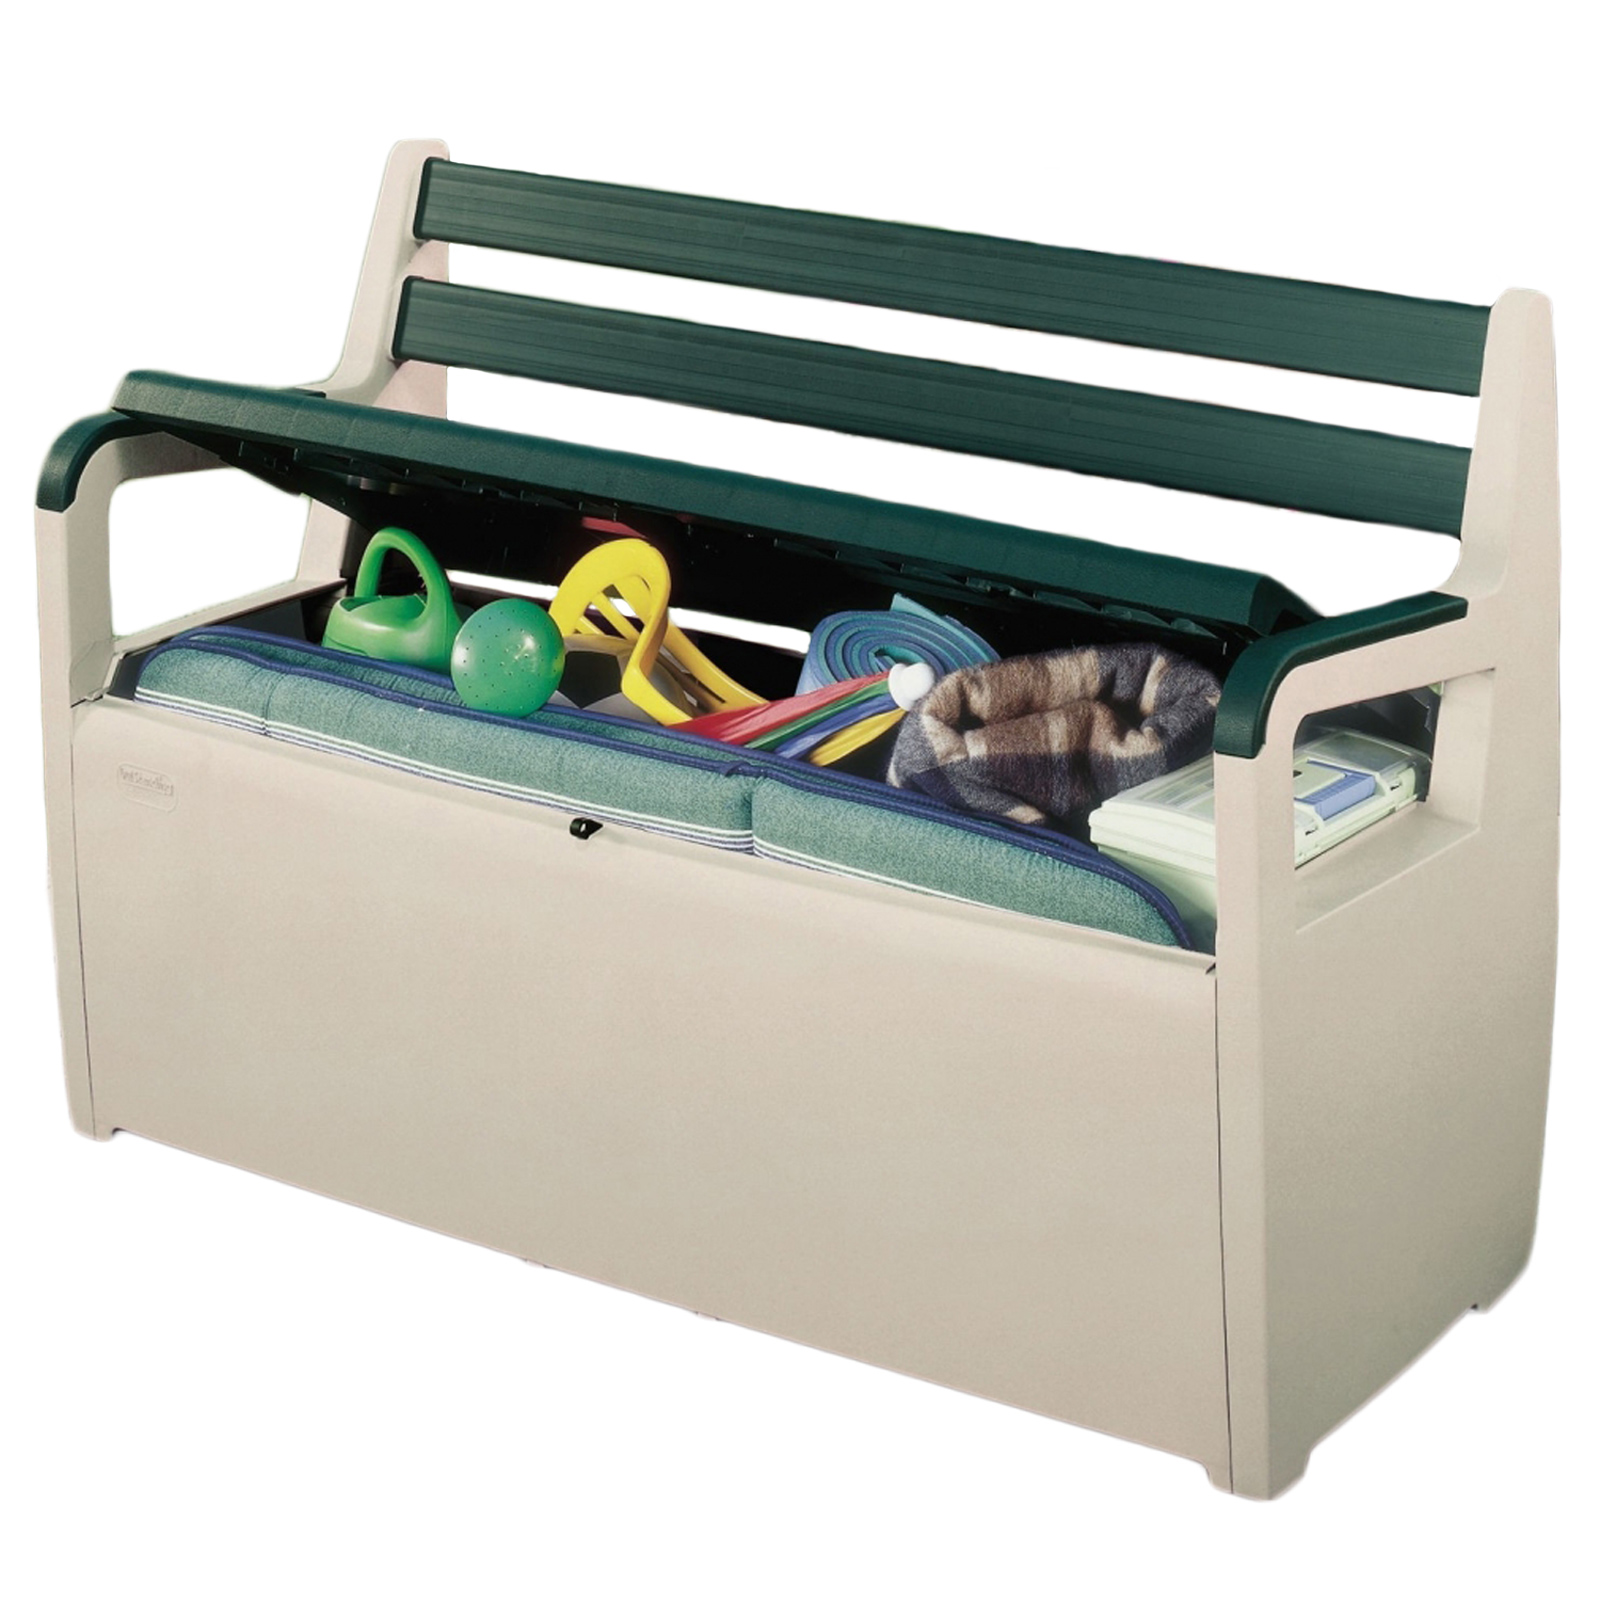 Keter Plastic Deck Patio Bench Large Garden Storage Seat